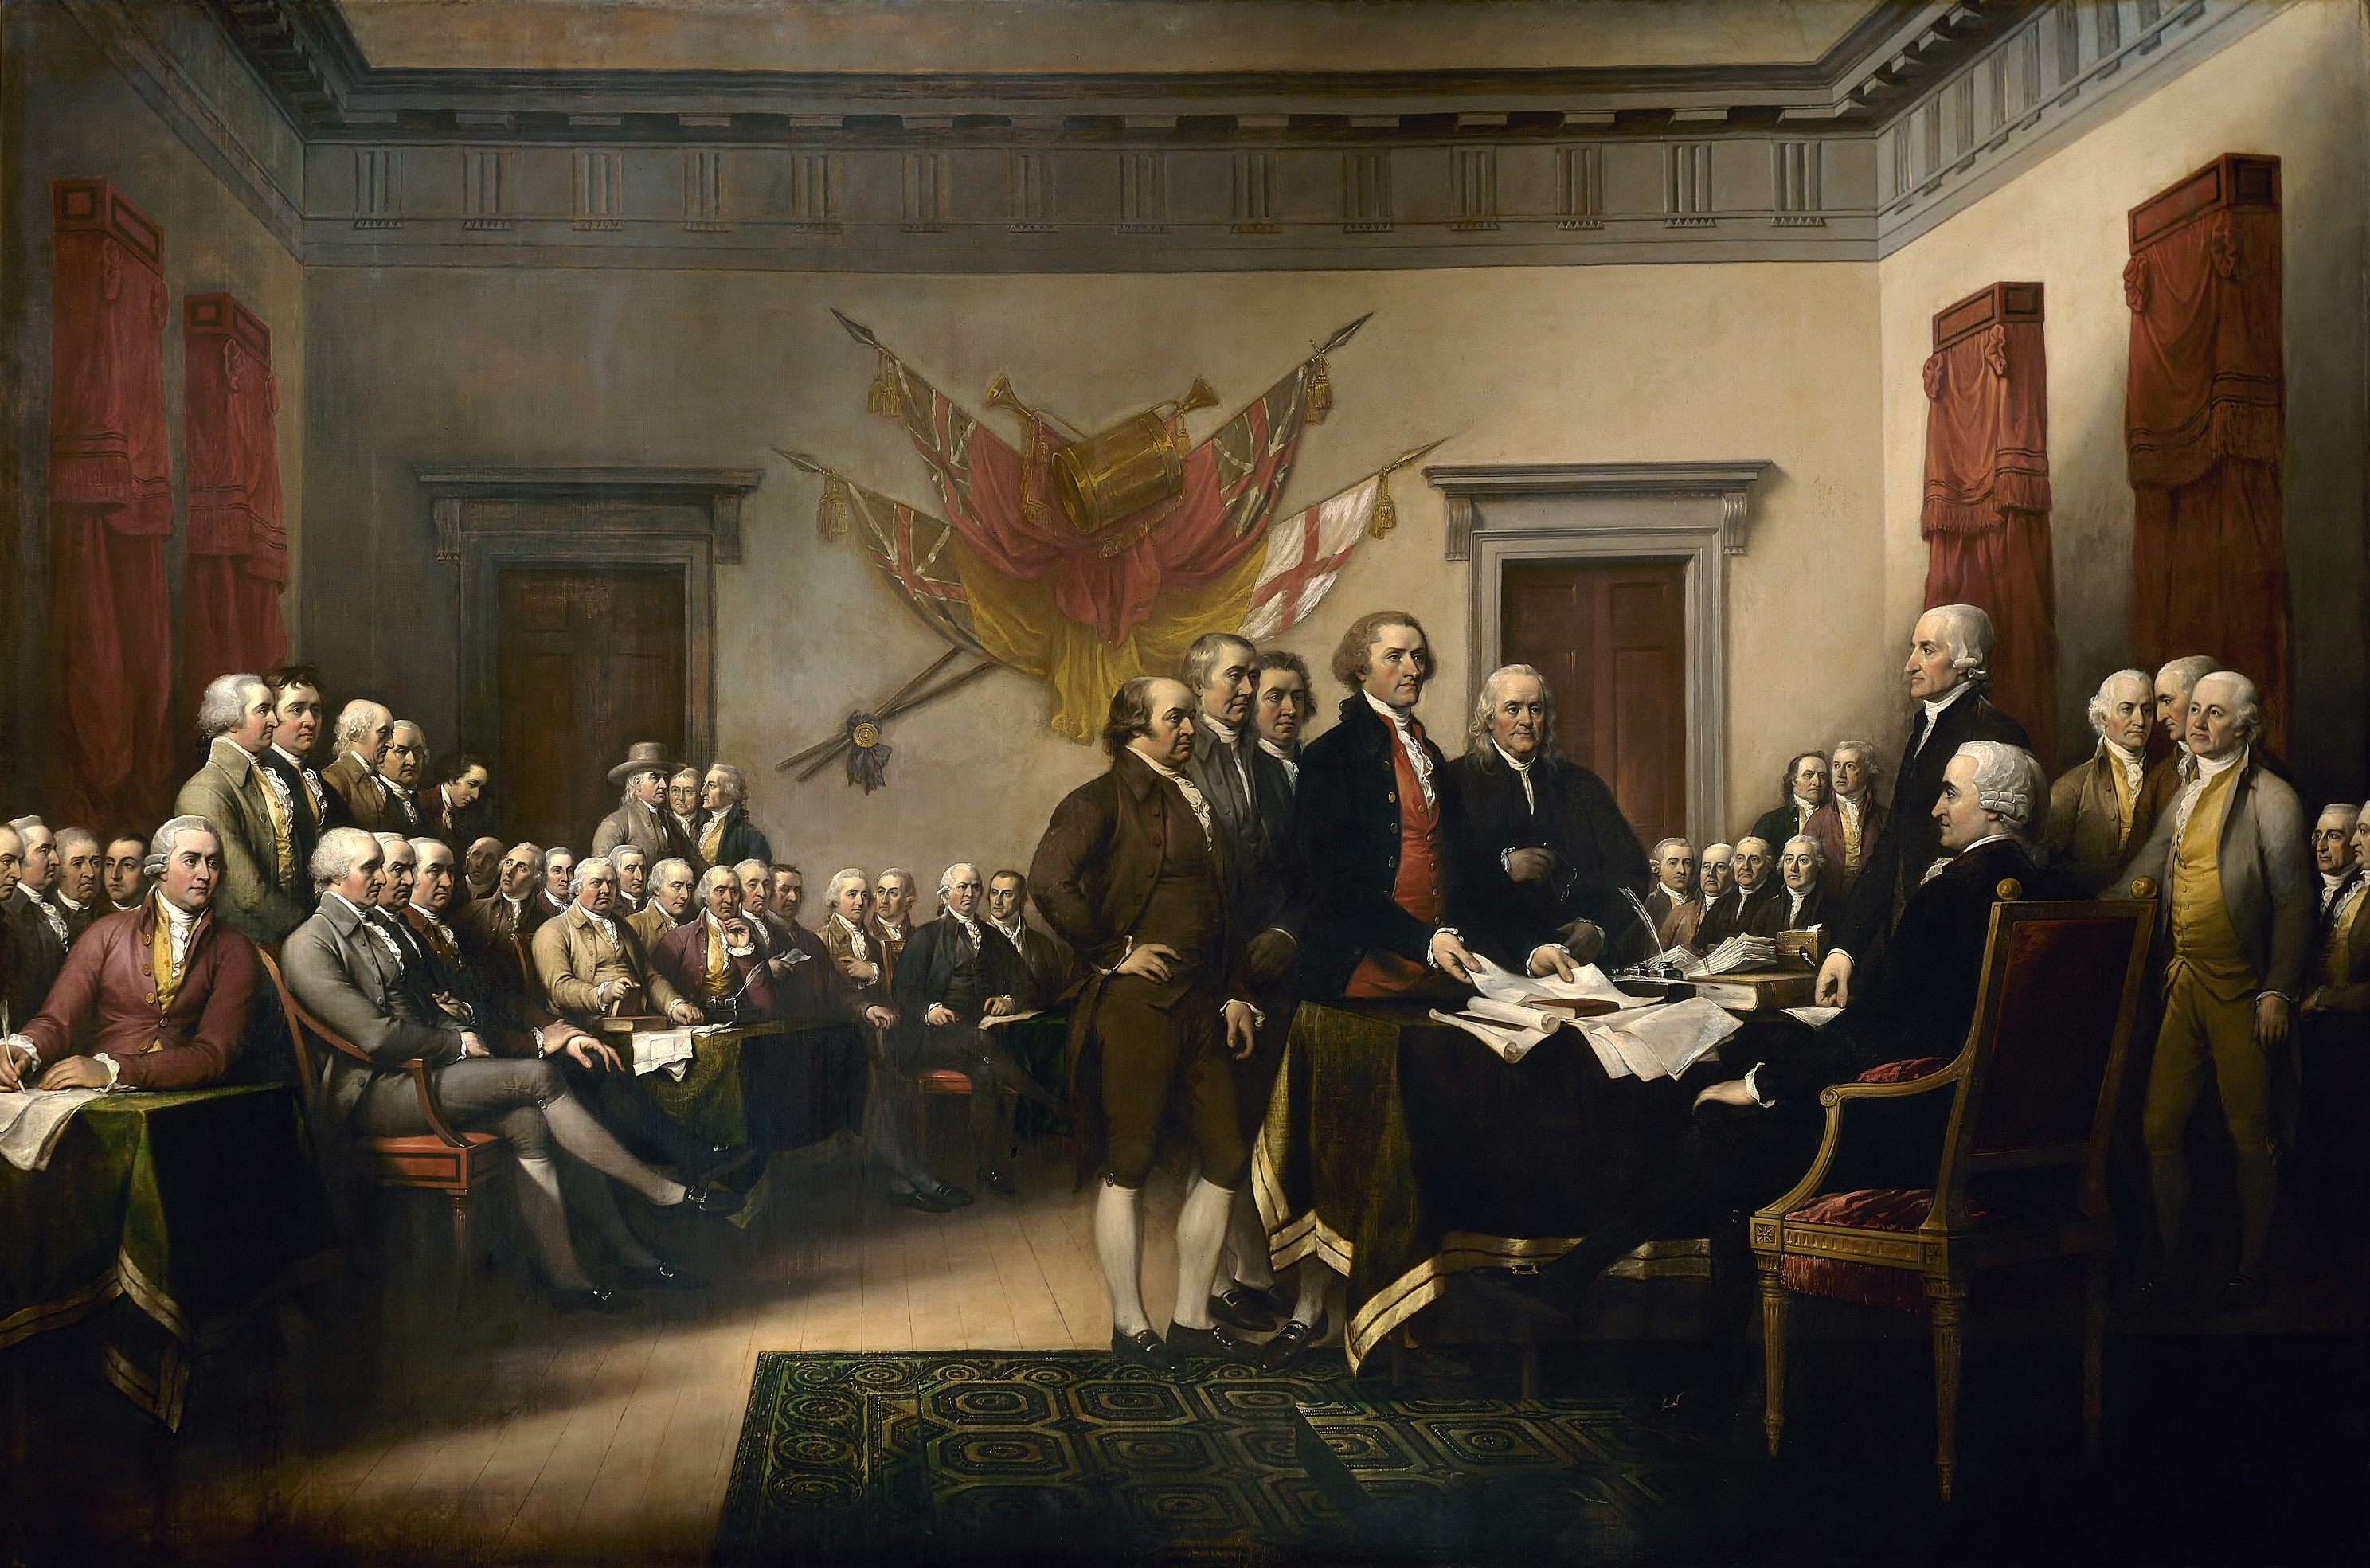 John Trumbull's famous painting is often identified as a depiction of the signing of the Declaration, but it actually shows the drafting committee presenting its work to the Congress. Oil on canvas, 1819, 12 feet (366 cm) by 18 feet (549 cm). On display in the Rotunda of the United States Capitol, Washington, D.C.